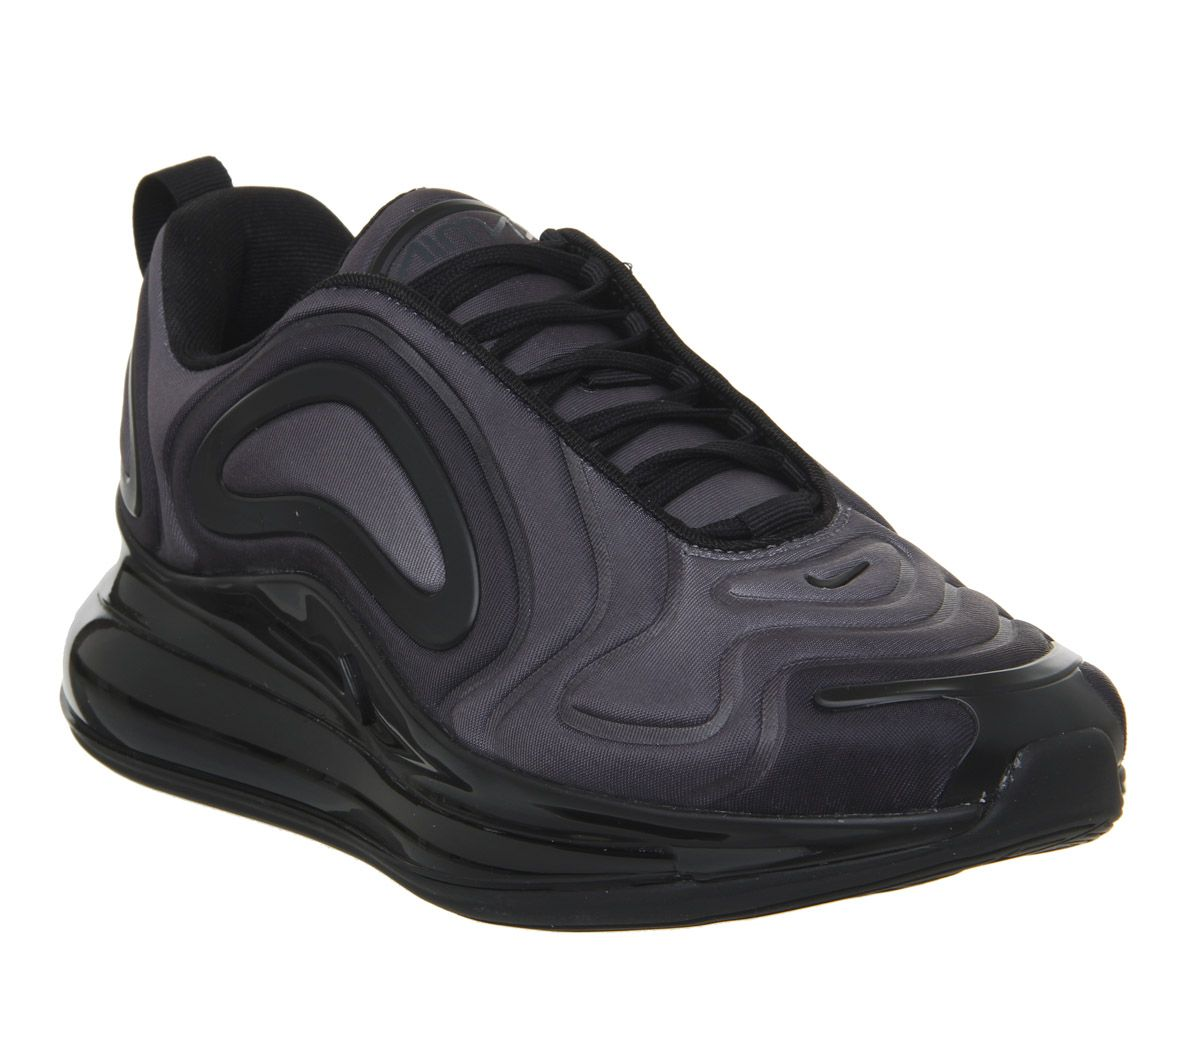 outlet store e2484 447cd Nike Air Max 720 Trainers Black Black Anthracite F - Hers trainers